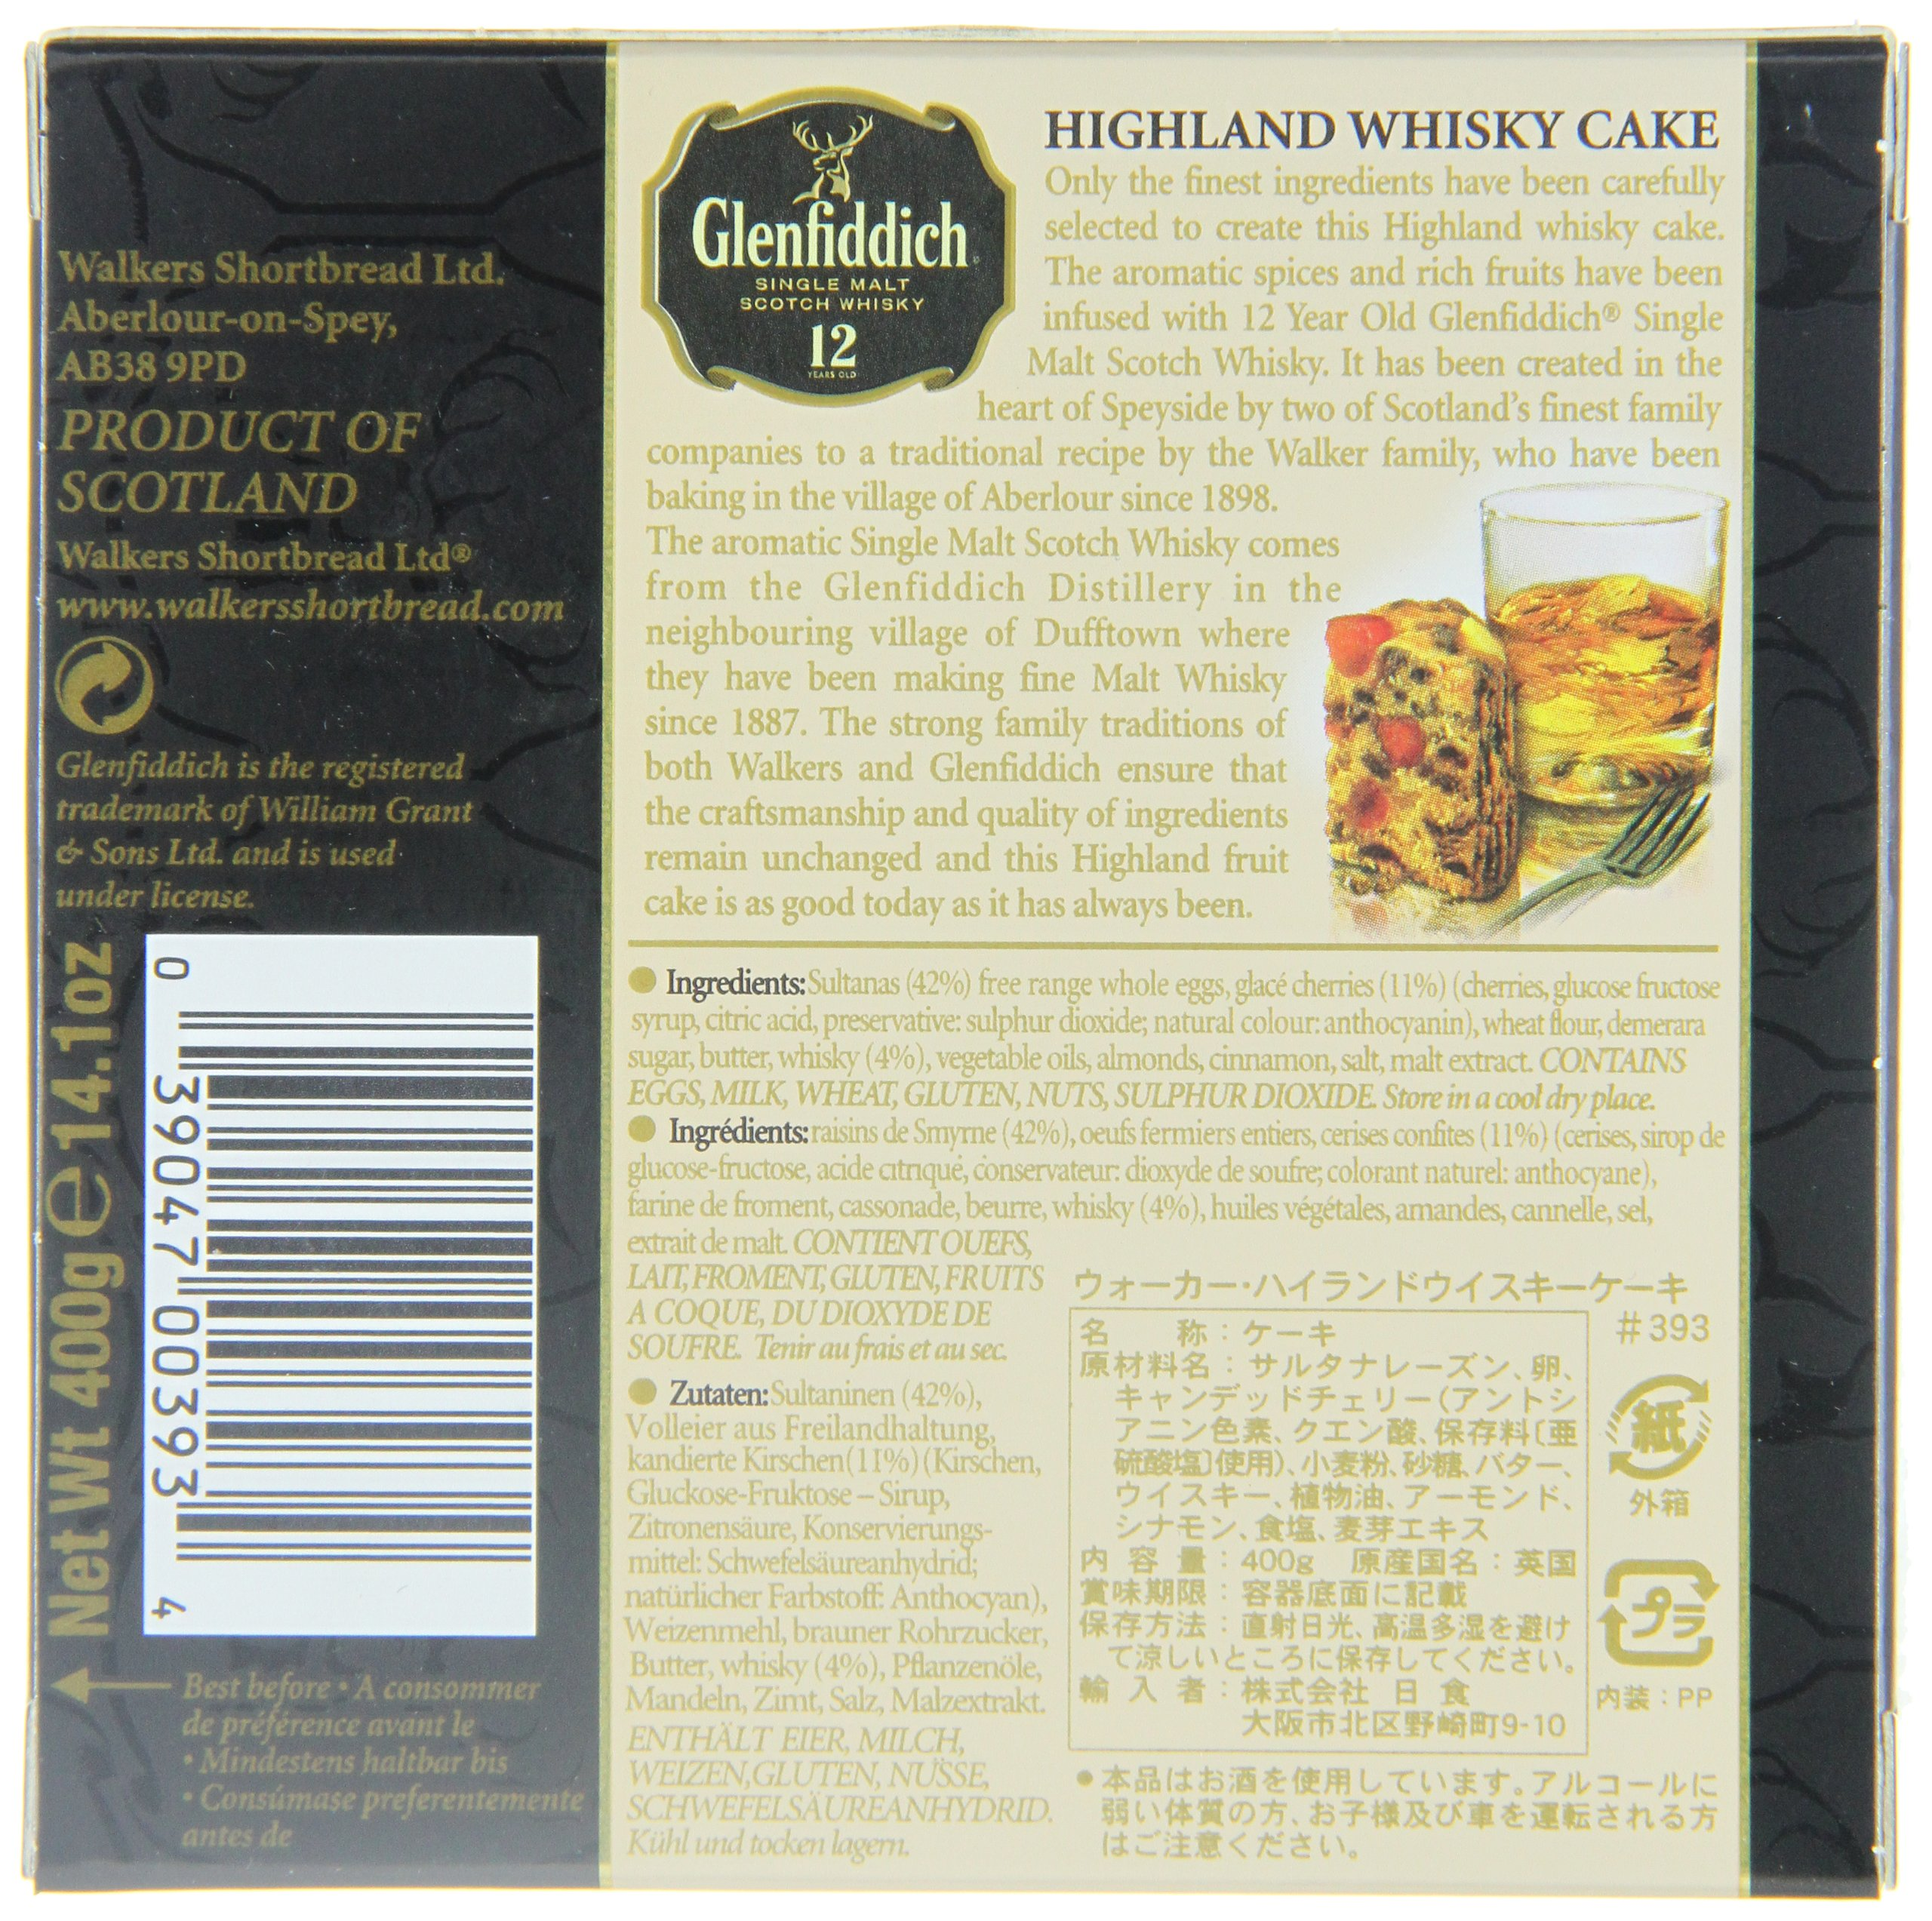 Walkers Shortbread Glenfiddich Highland Whisky Cake, 14.1 Ounce Box Traditional Scottish Fruit Cake with Glenfiddich Malt Whisky, Cherries, Sultanas by Walkers Shortbread (Image #10)